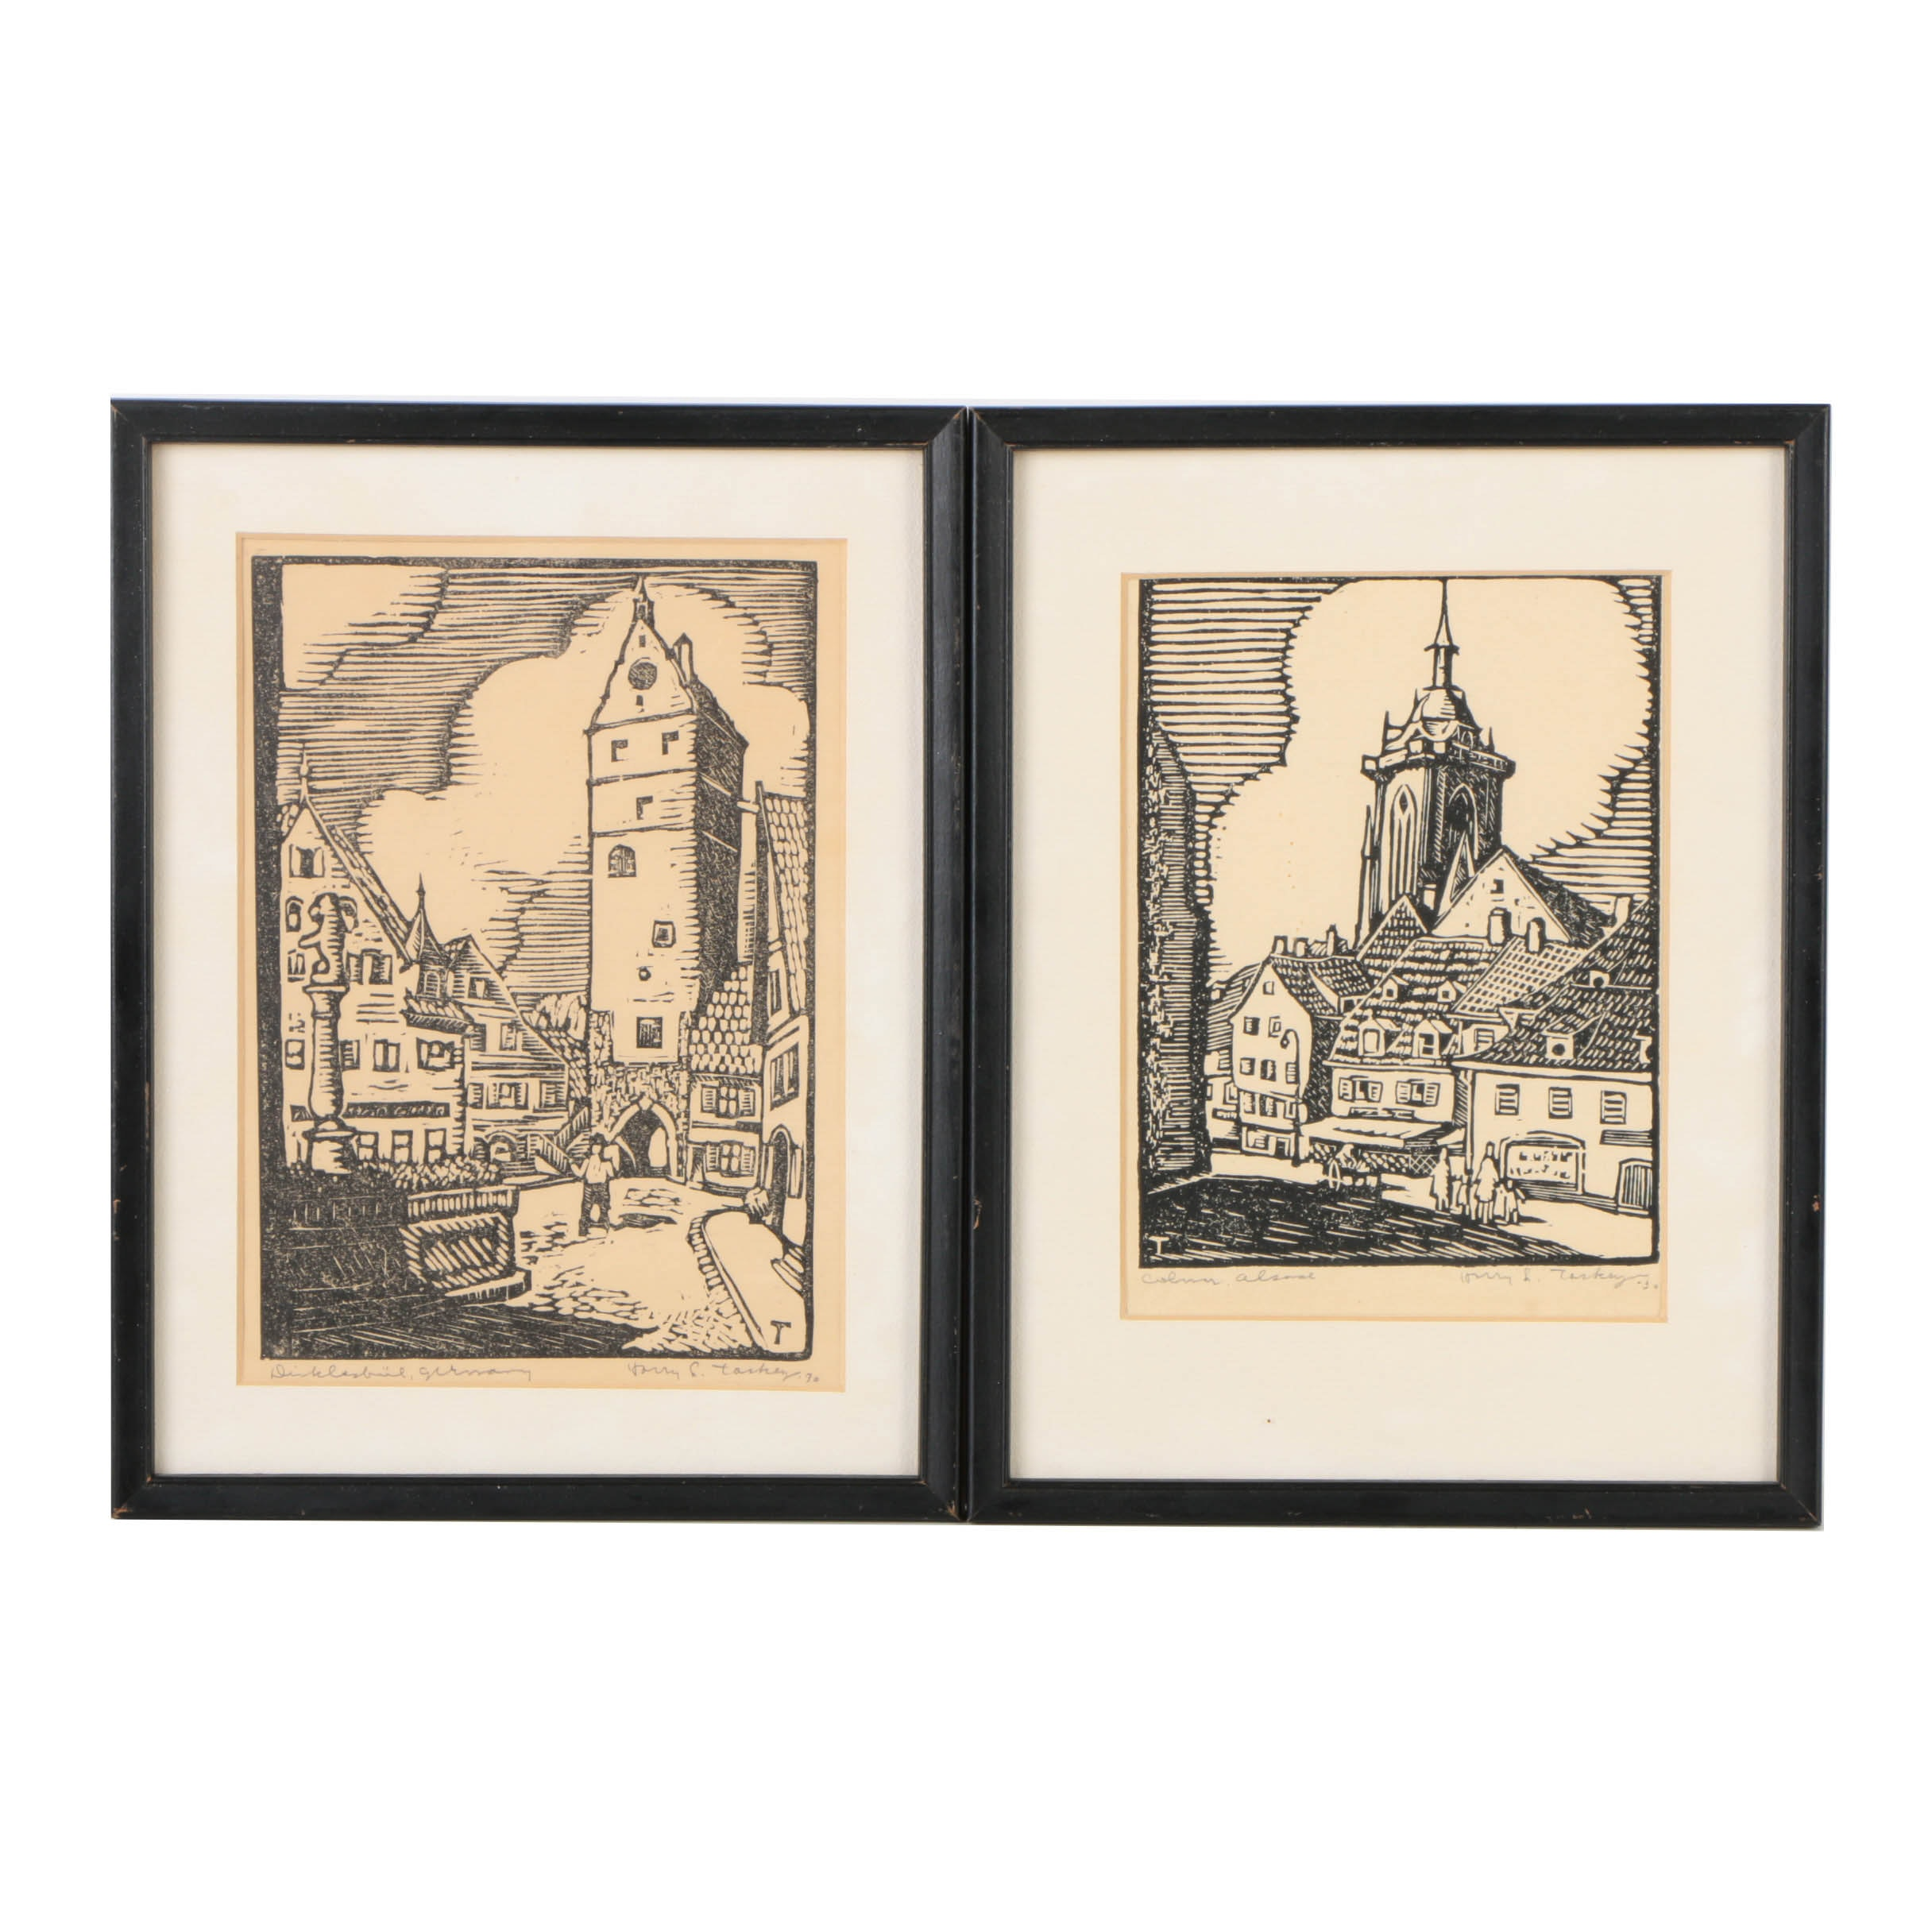 Pair of Harry Taskey Woodcuts on Paper of European Townscapes